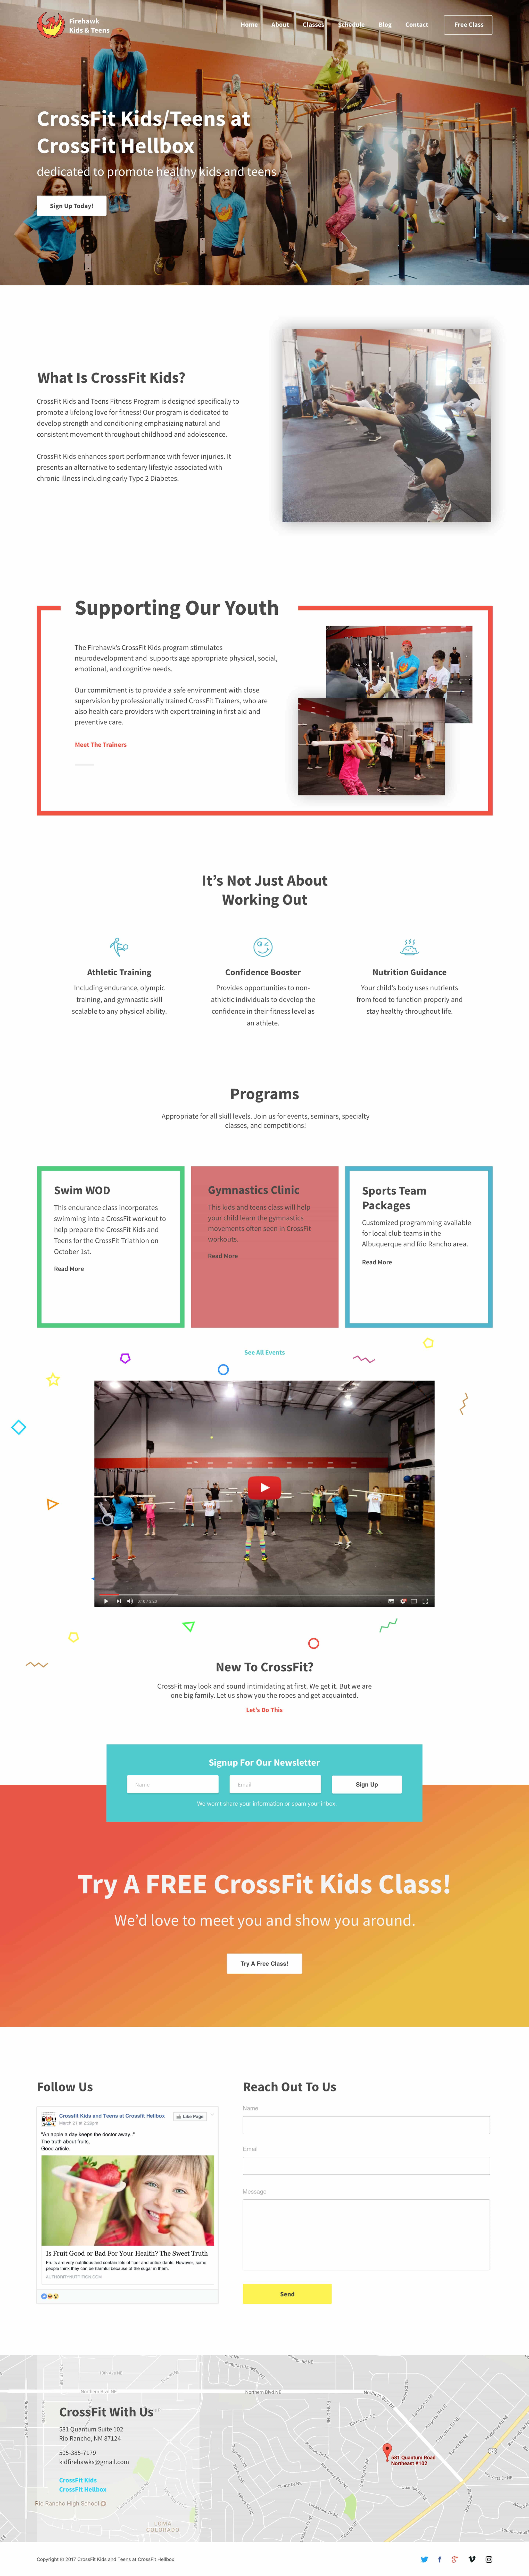 Firehawks Kids & Teens CrossFit Website Design Screenshot